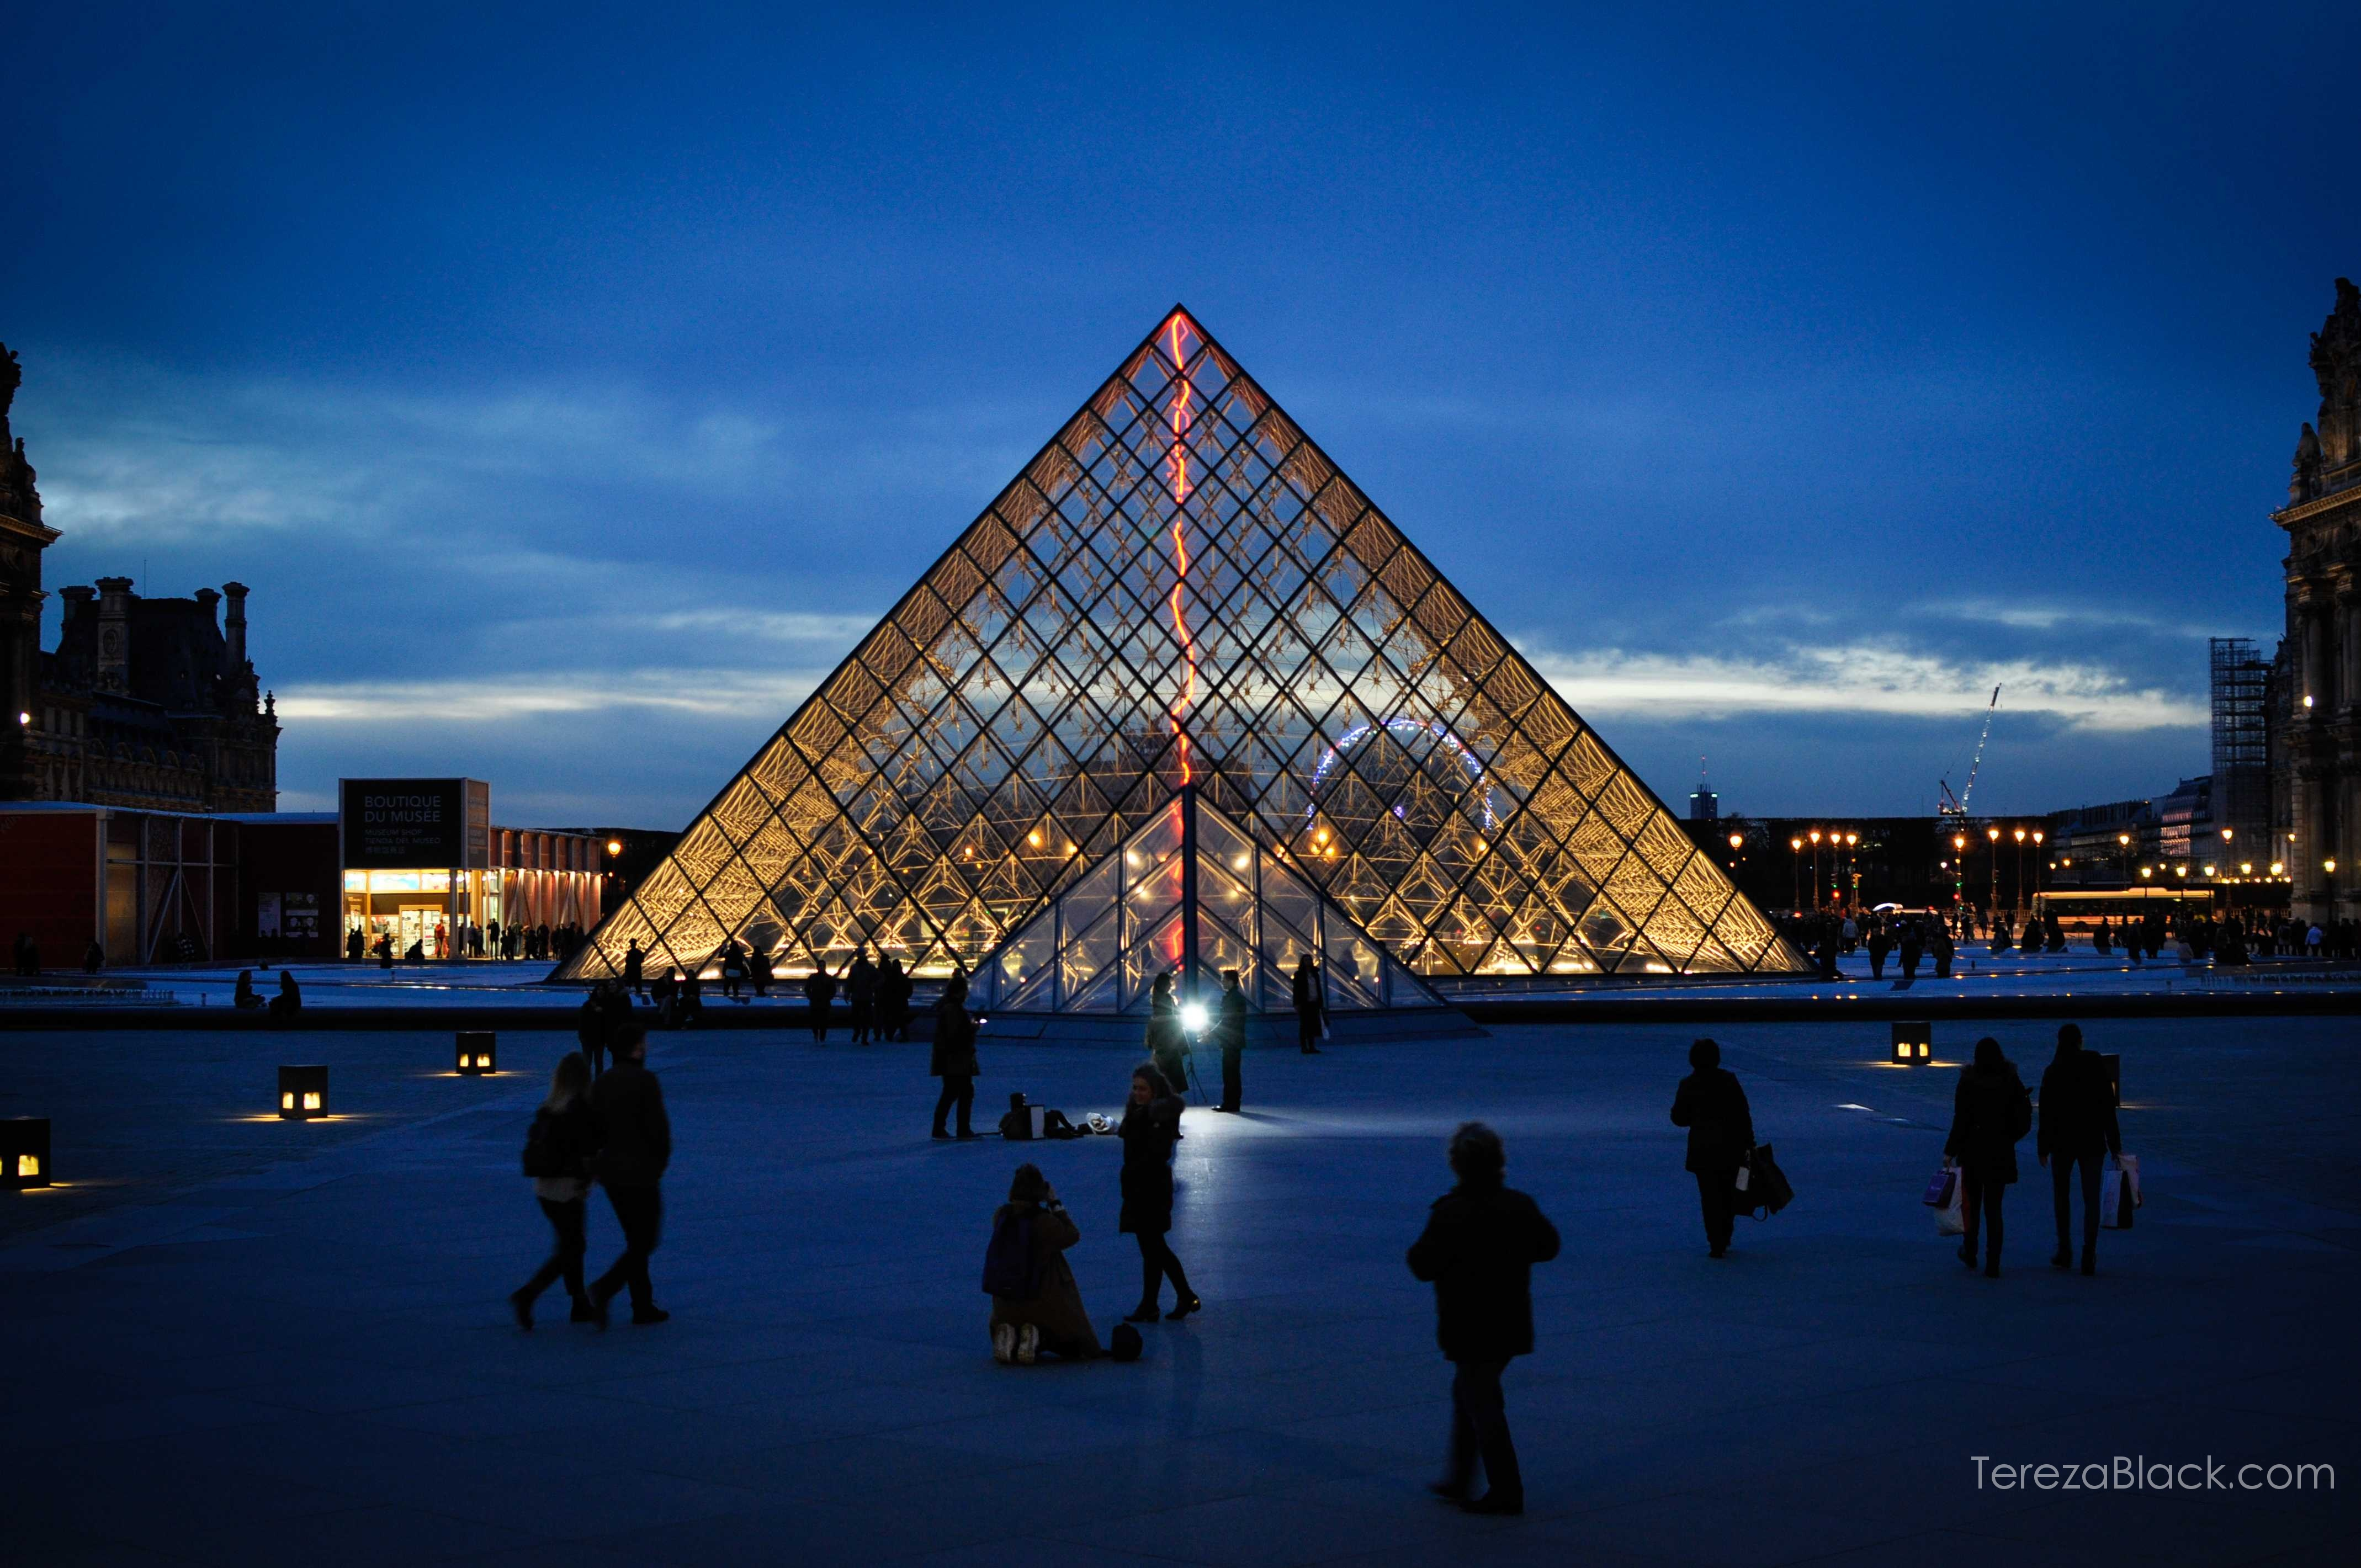 Pyramides of Louvre in Paris by night